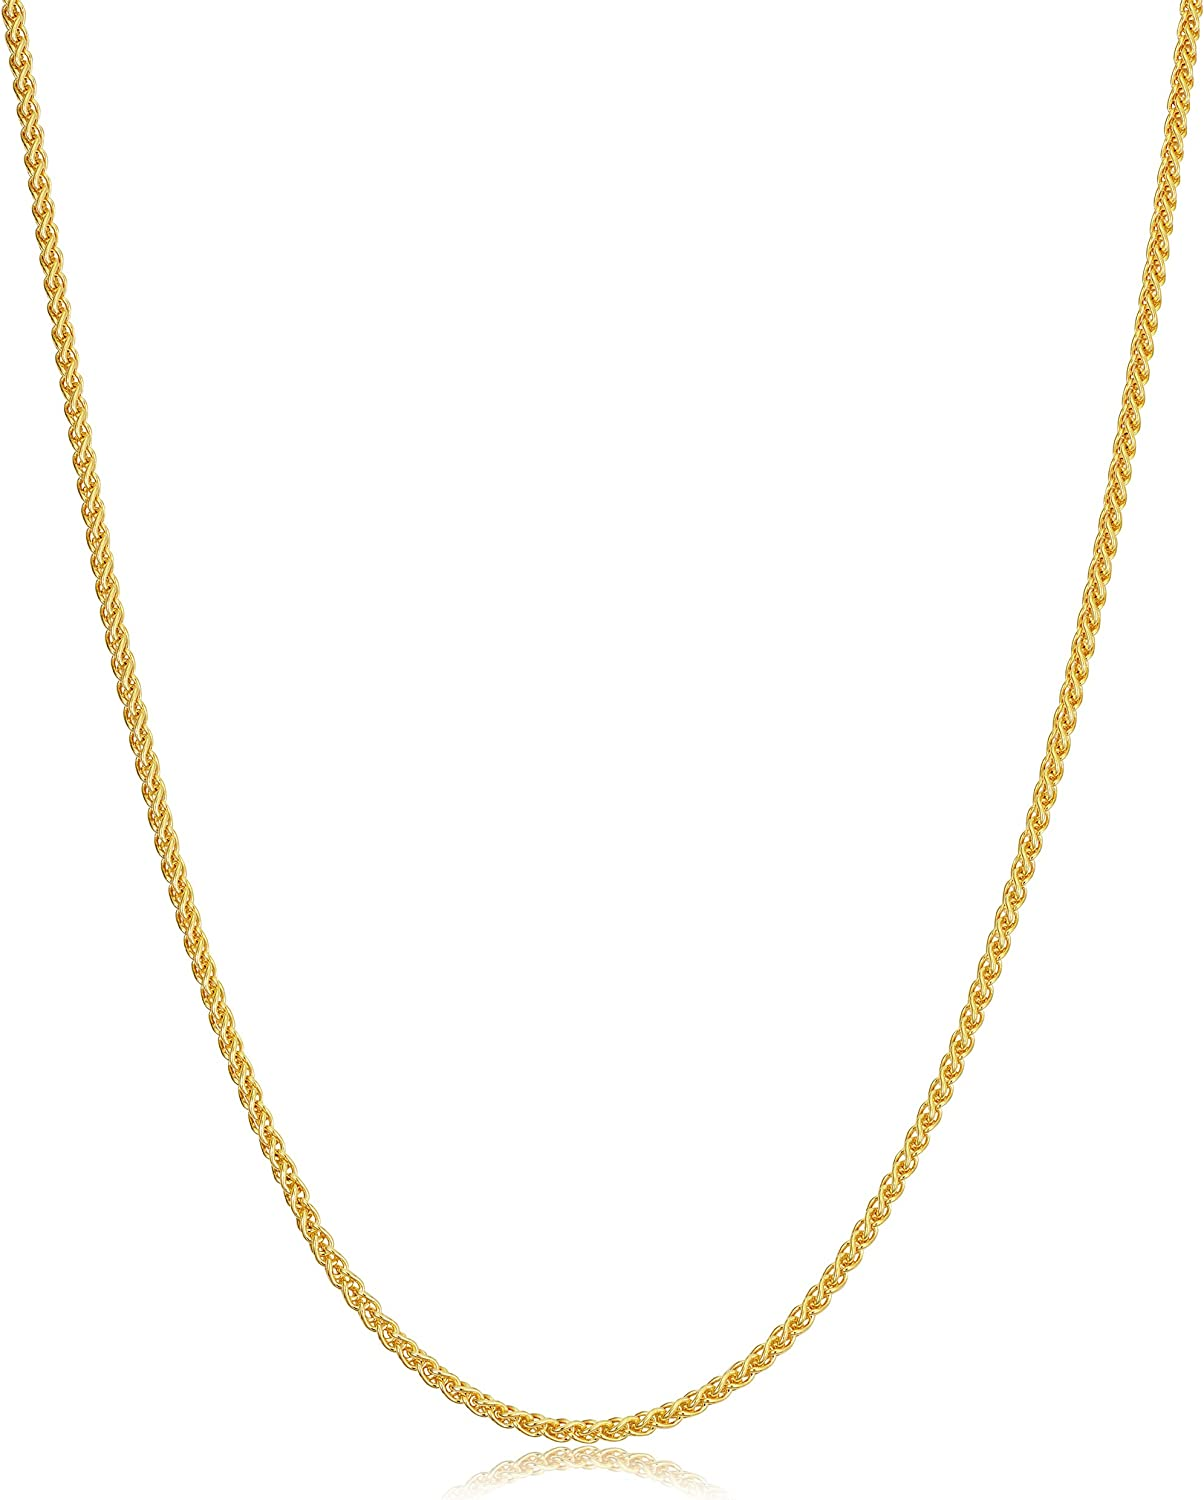 14k Yellow Gold Filled or White Gold Filled Round Wheat Chain Pendant Necklace (0.8 mm, 1.2 mm, 1.5 mm or 2.5 mm)